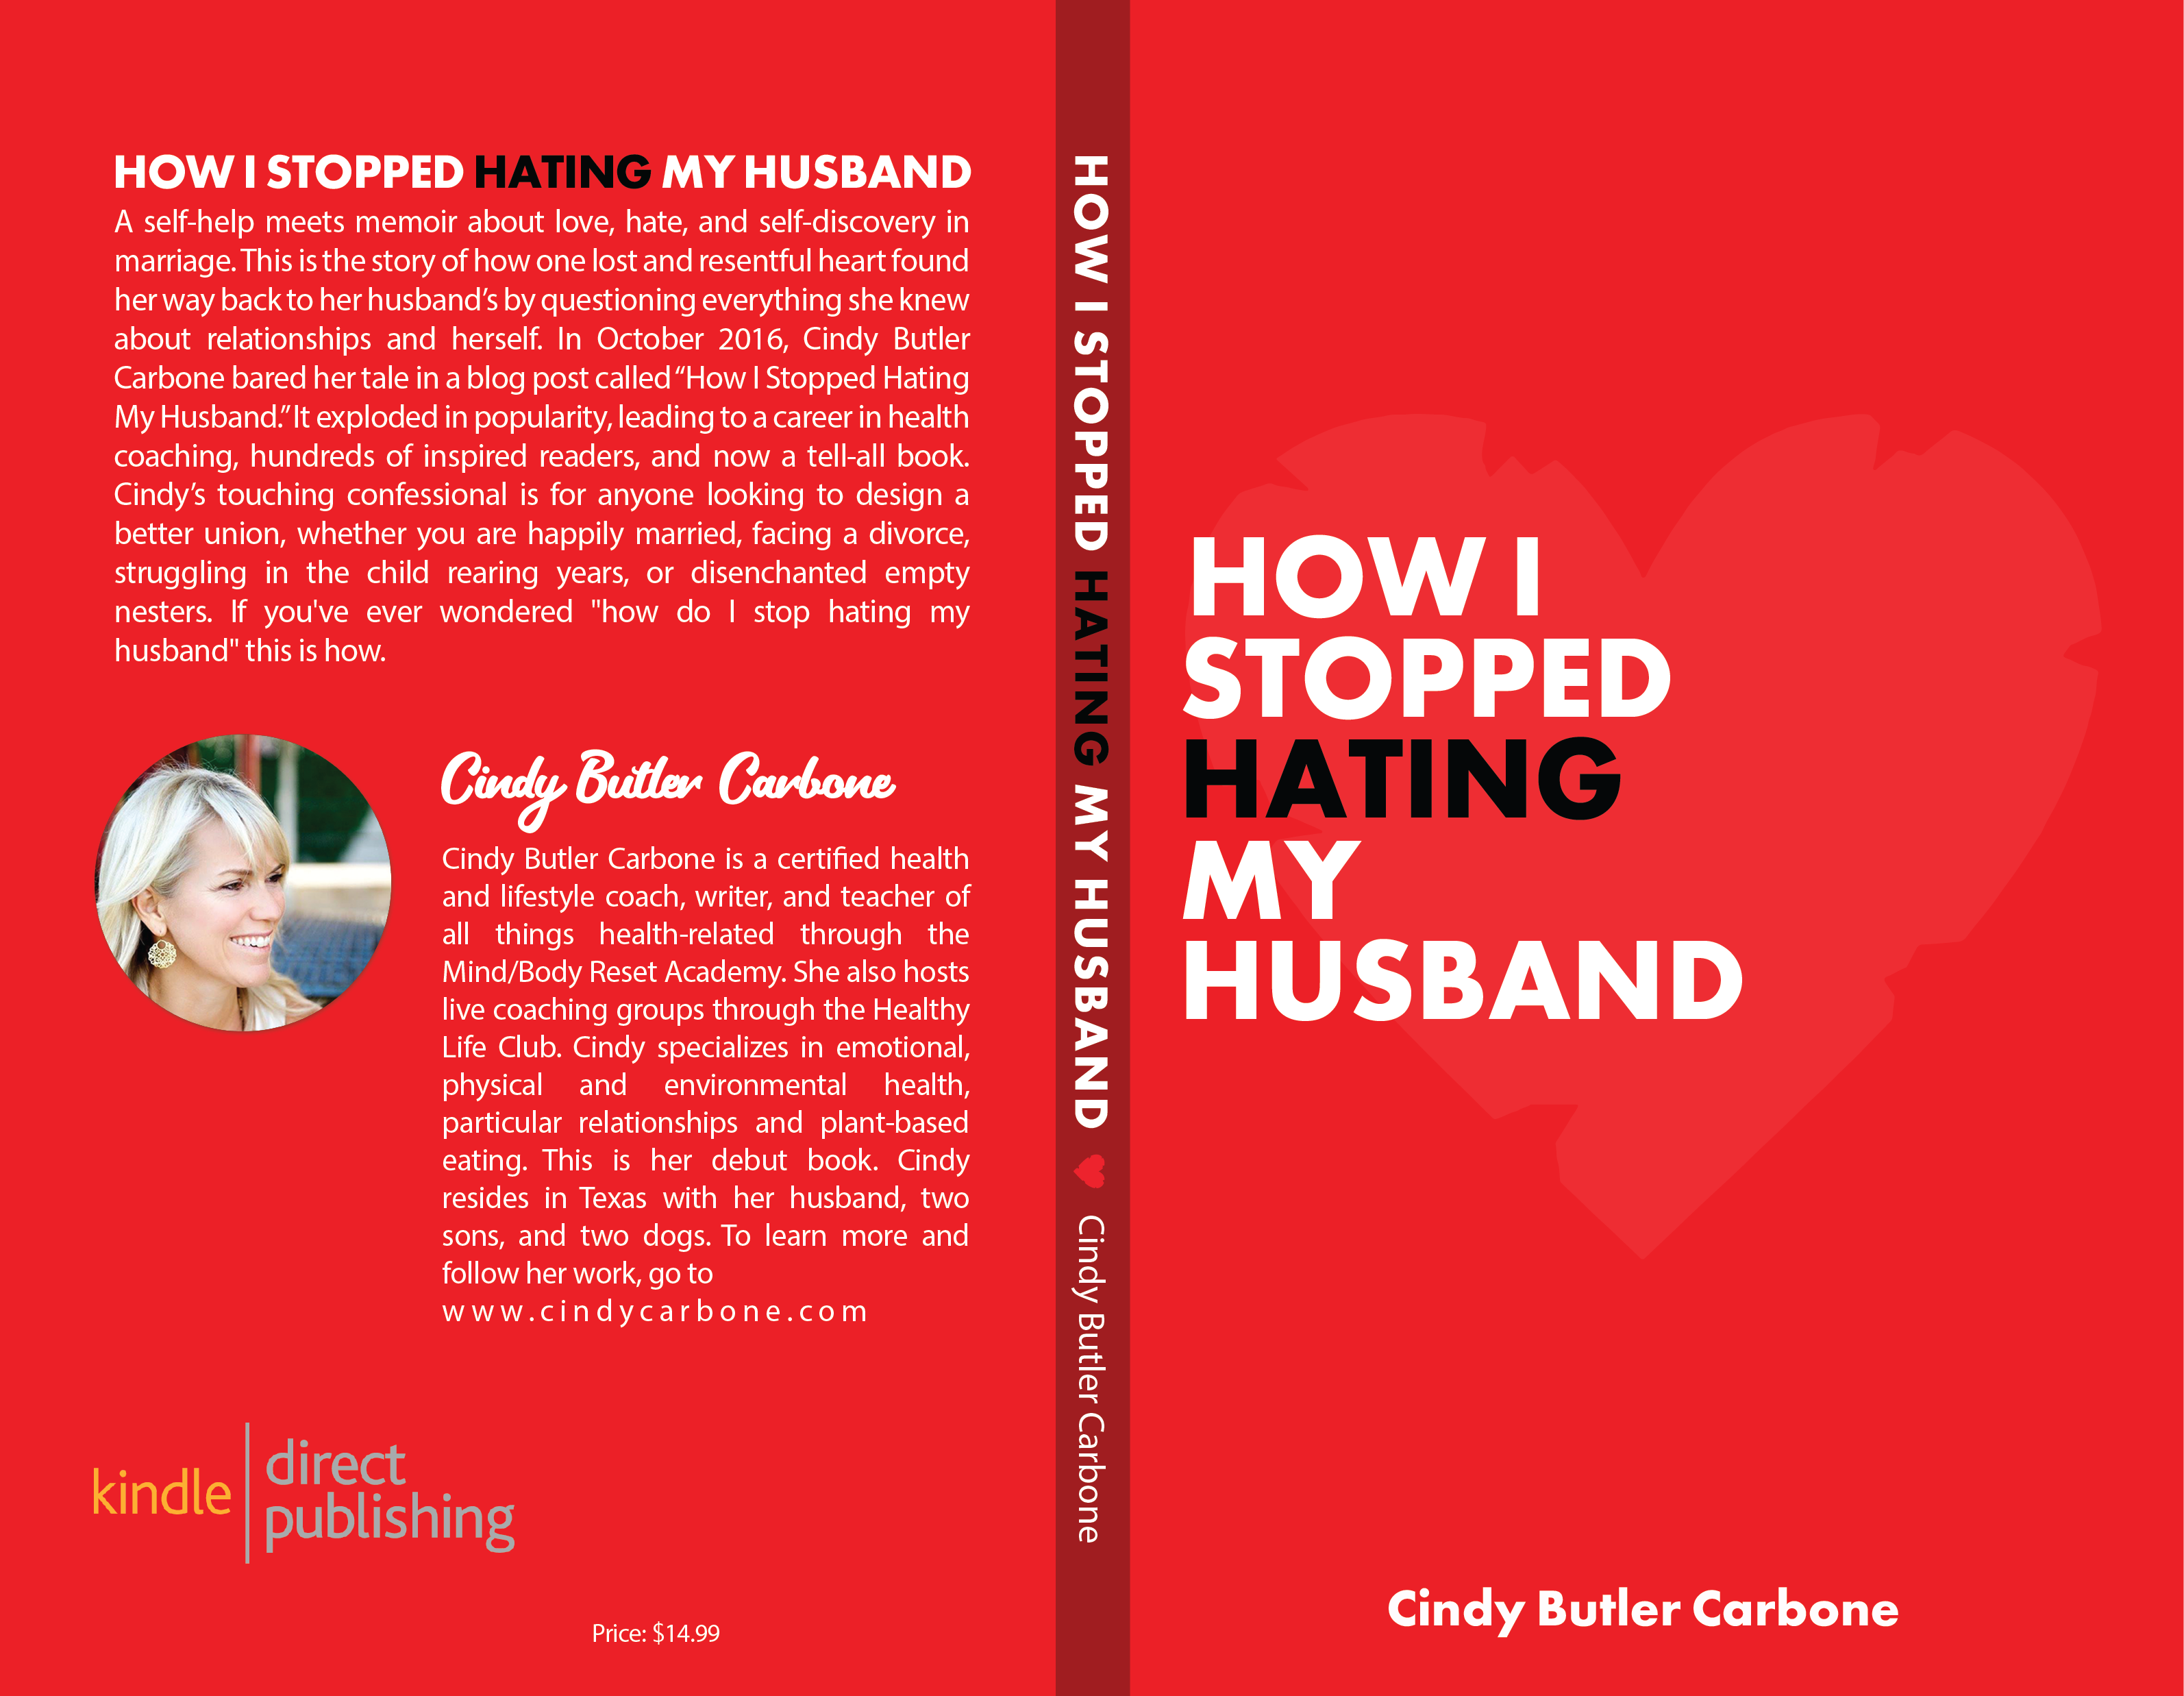 """How I stopped hating my husband"" self-help memoir needs a cover that inspires hope."